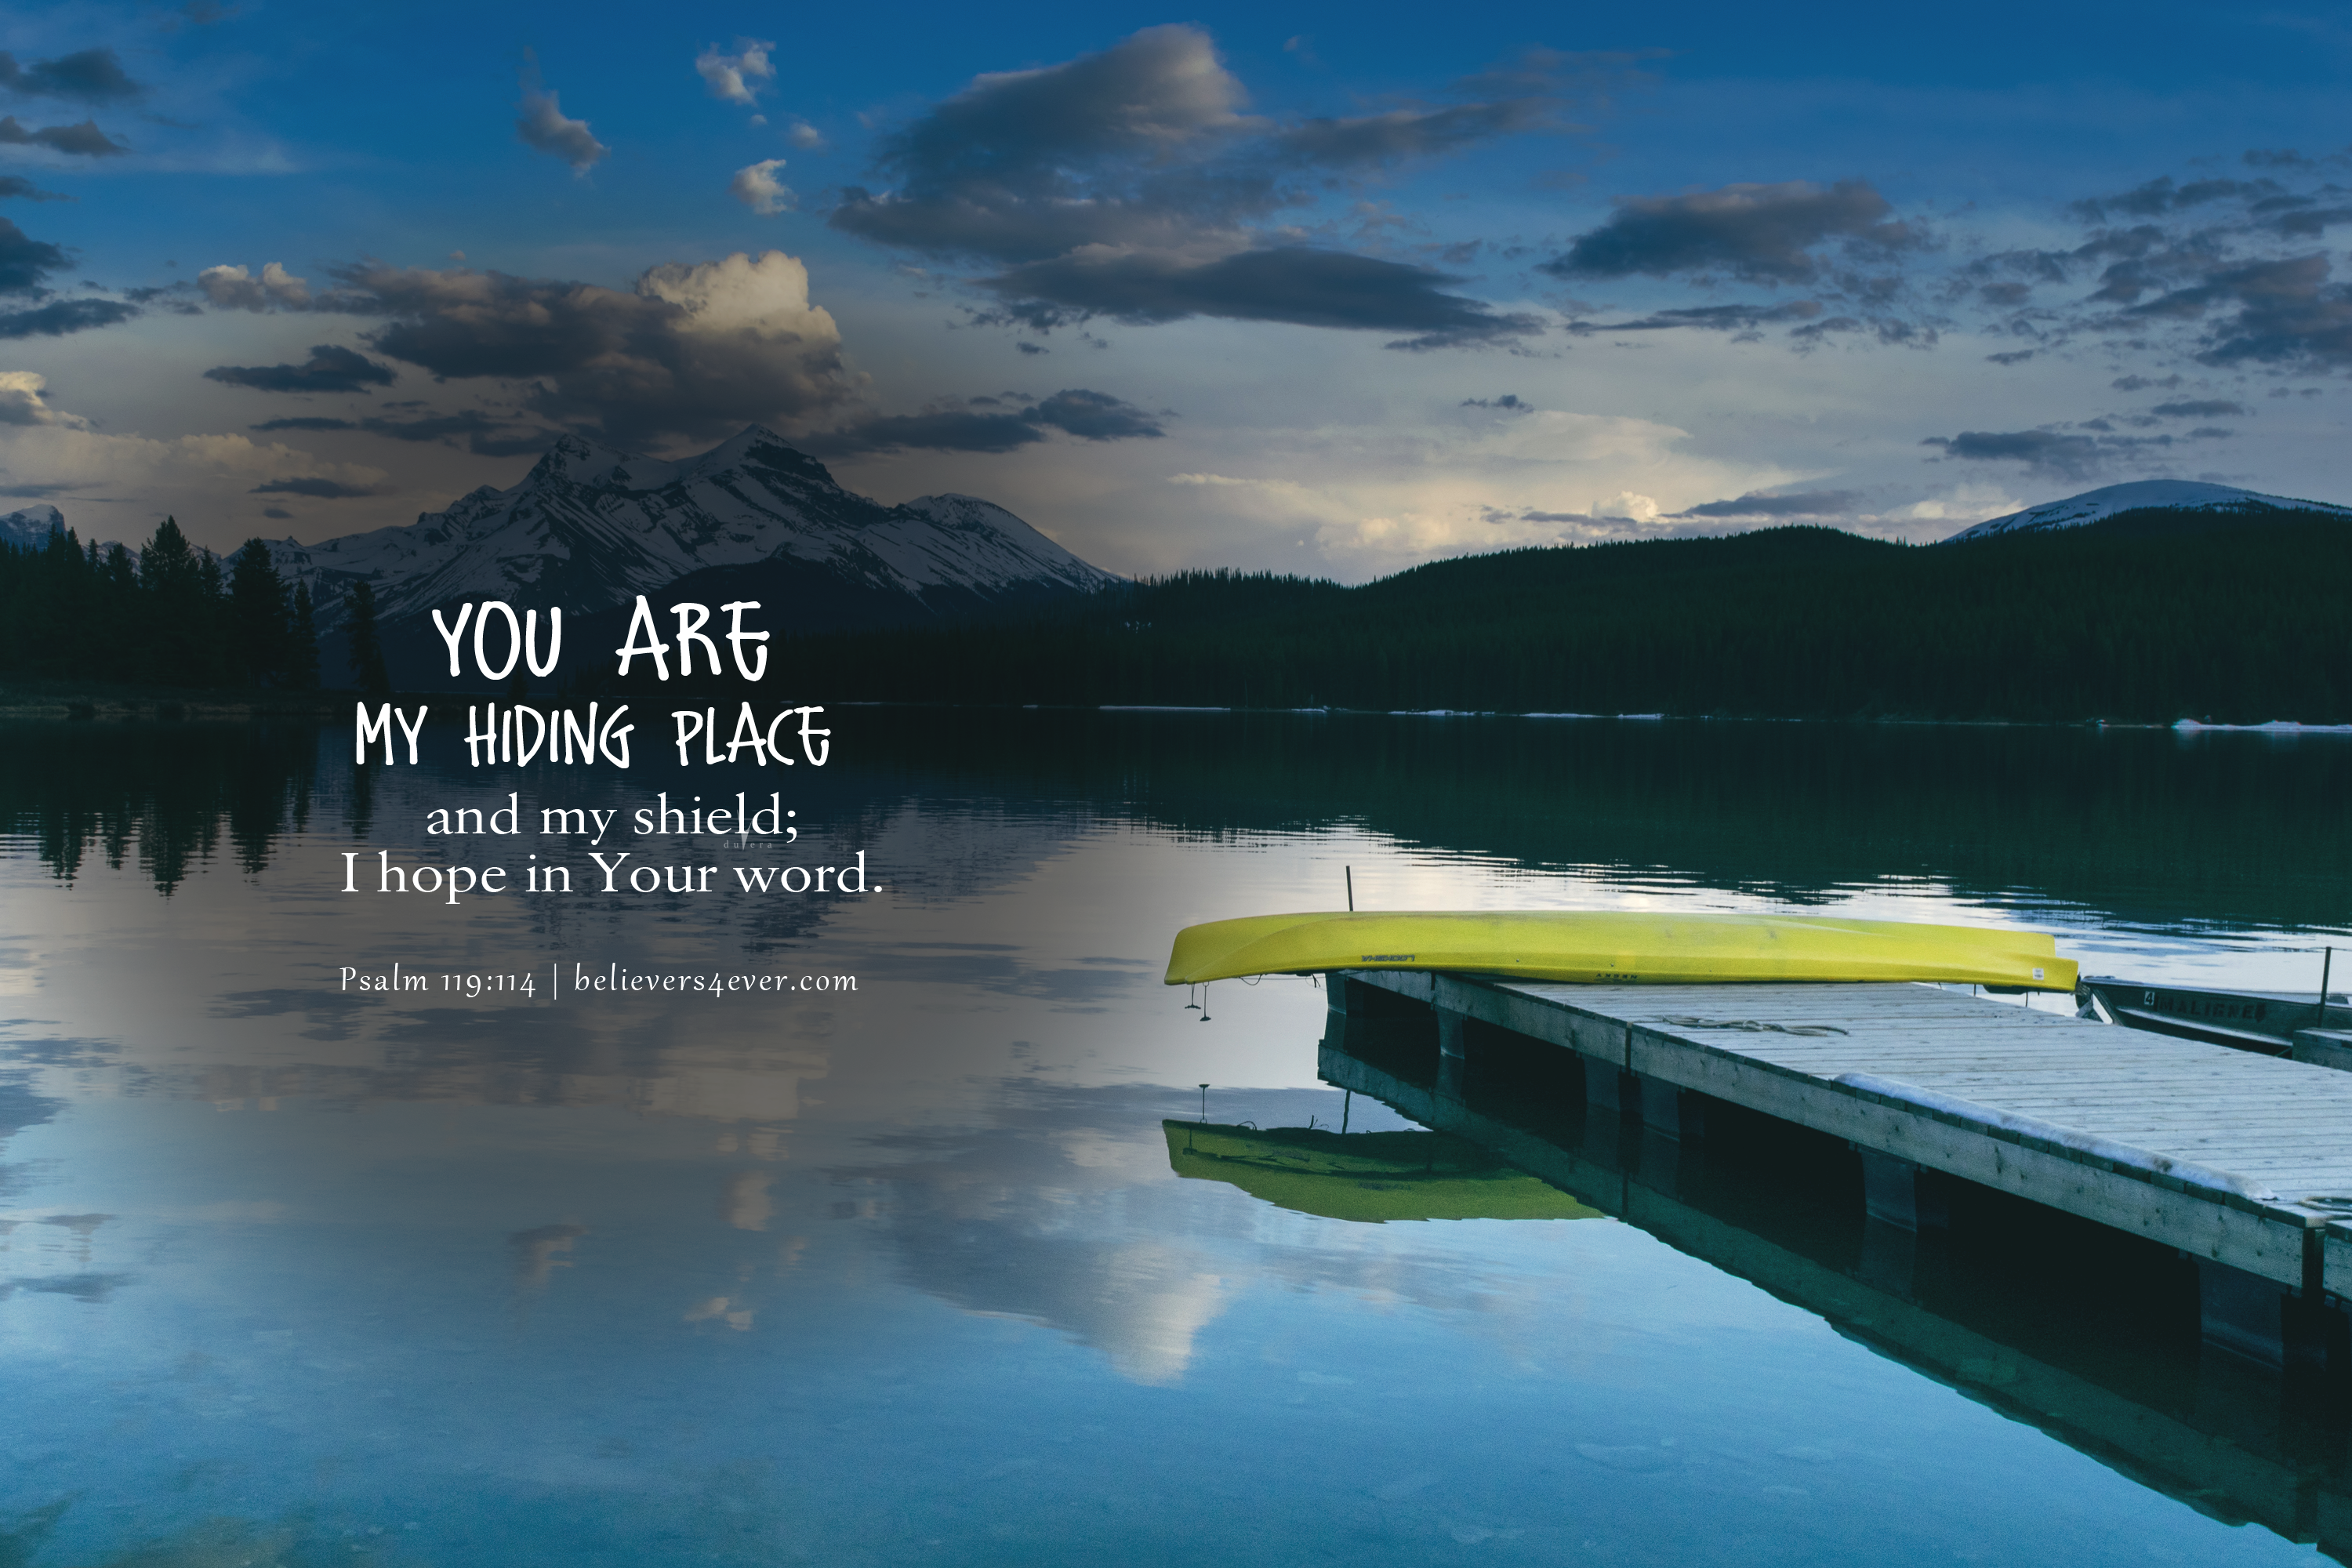 You are my hiding place Bible verse wallpaper, Christian